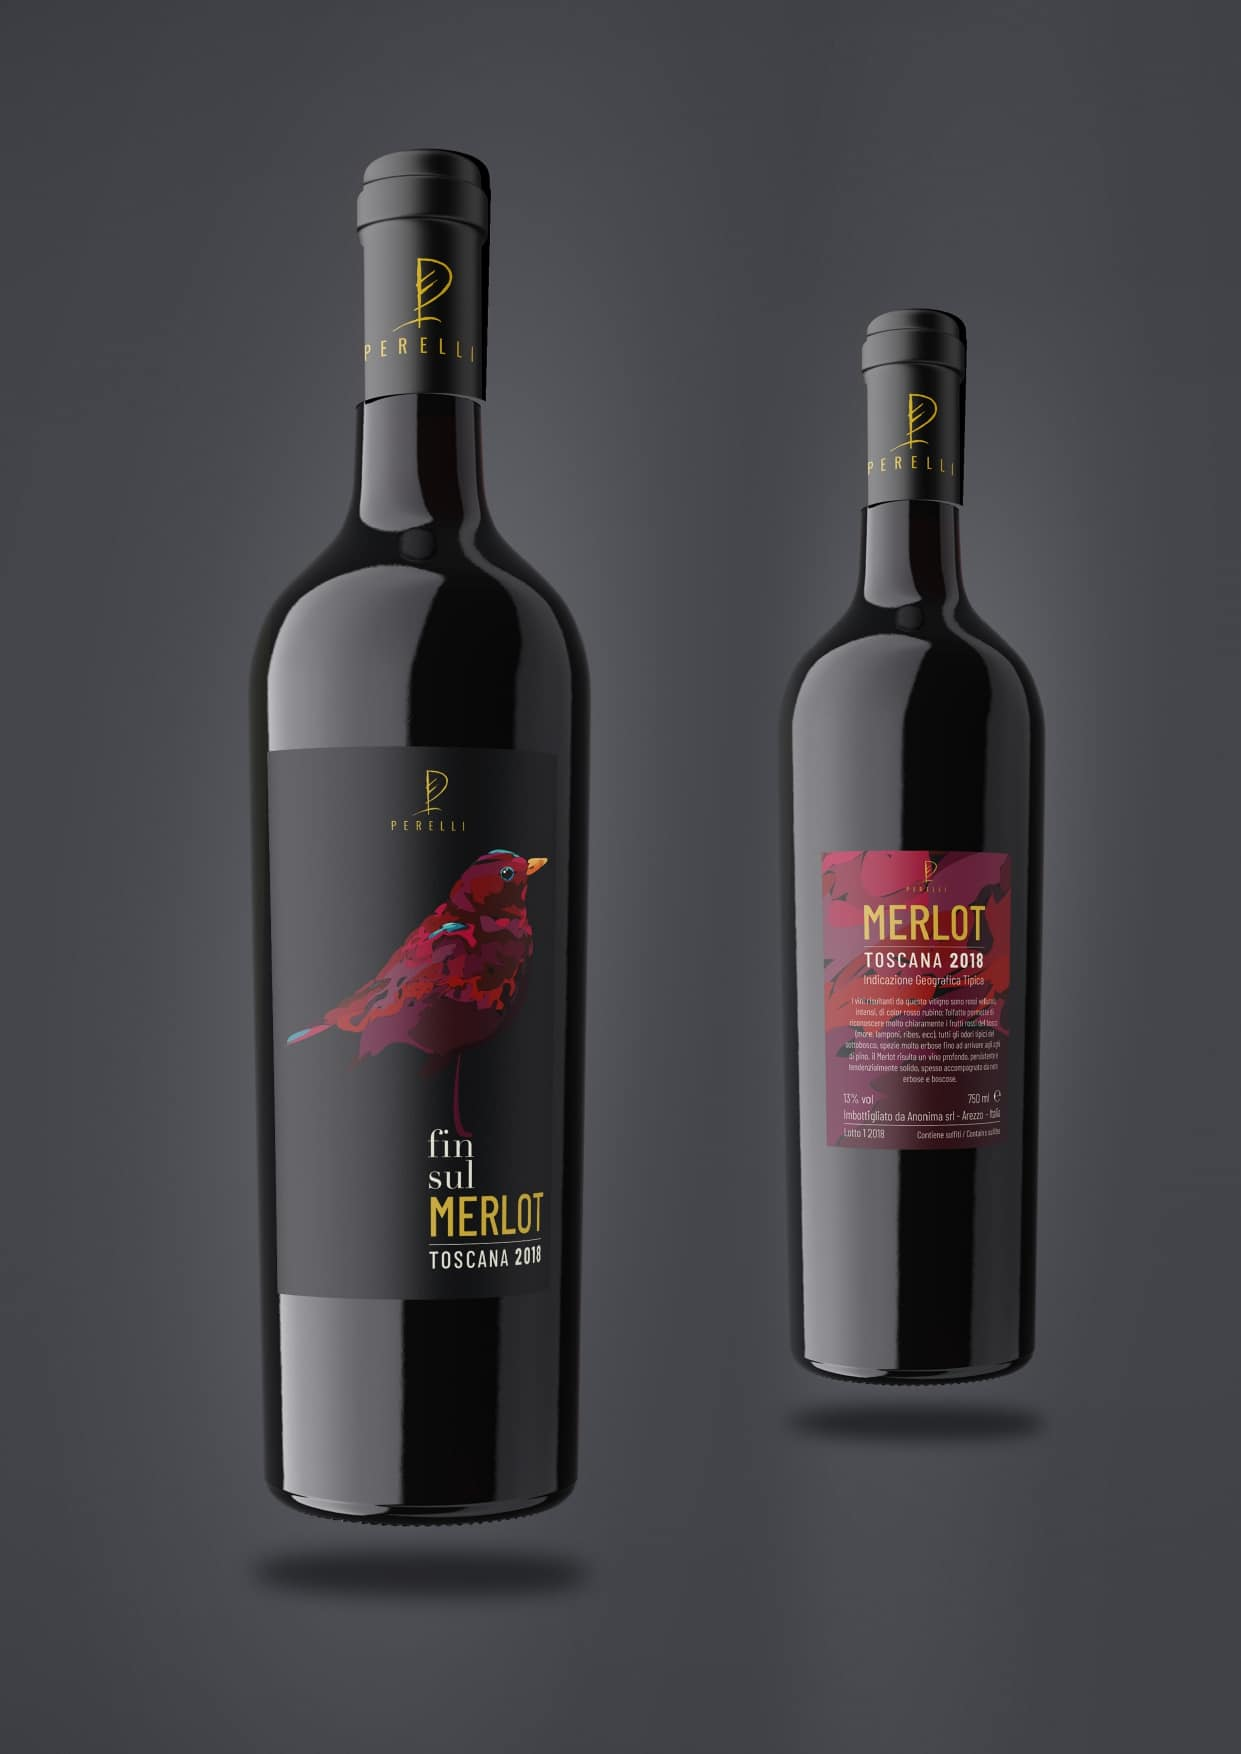 Perelliwinery-Merlot2018-progetto_page-0005